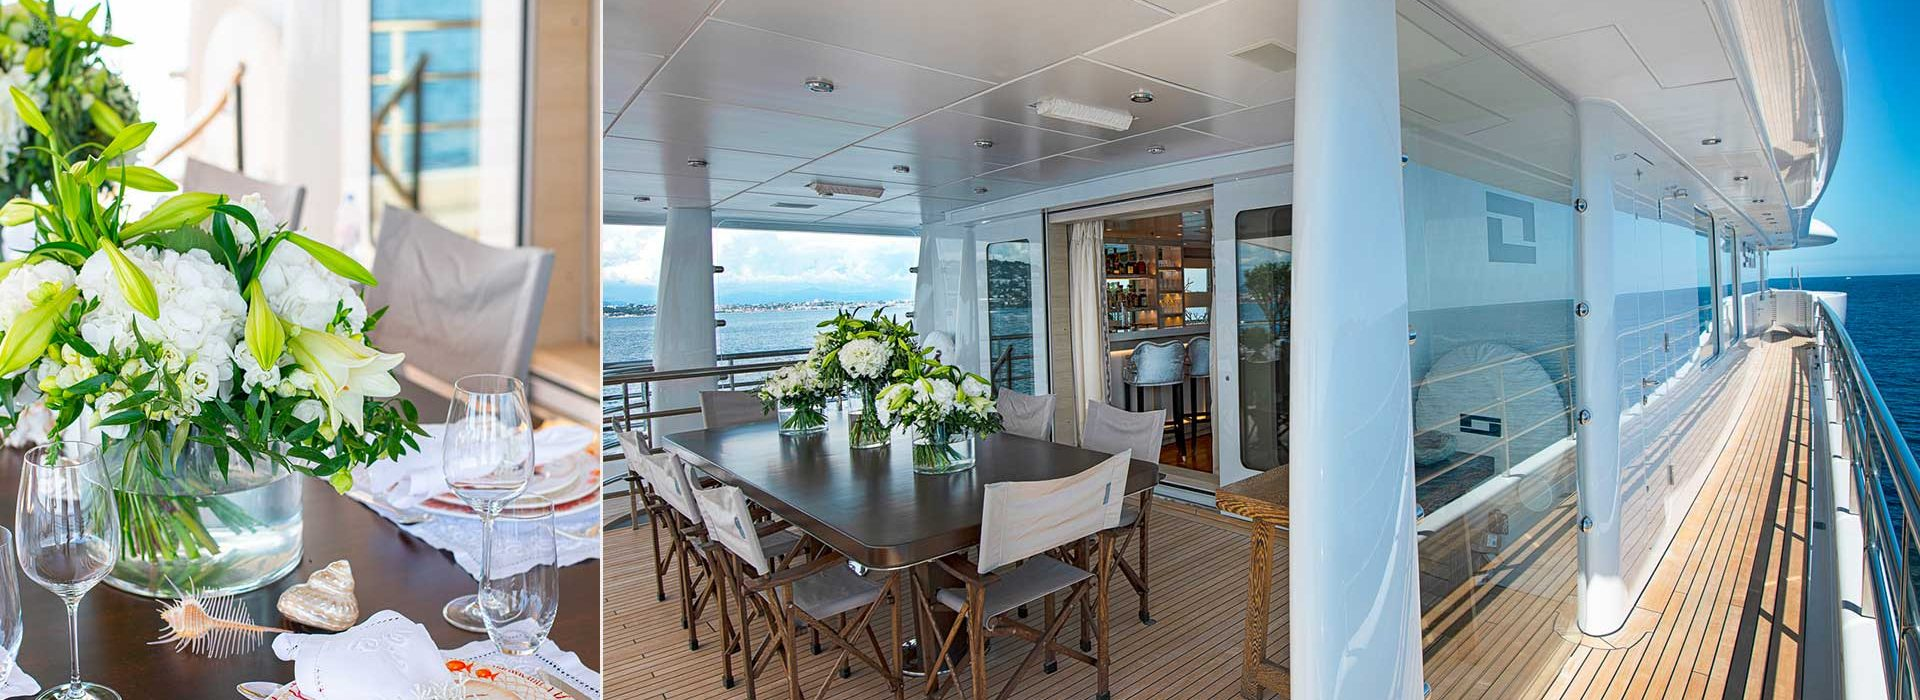 YACHT-REFIT-AMELS-LIMITED-EDITION-26-Dome-interior-design-Geneve-Suisse